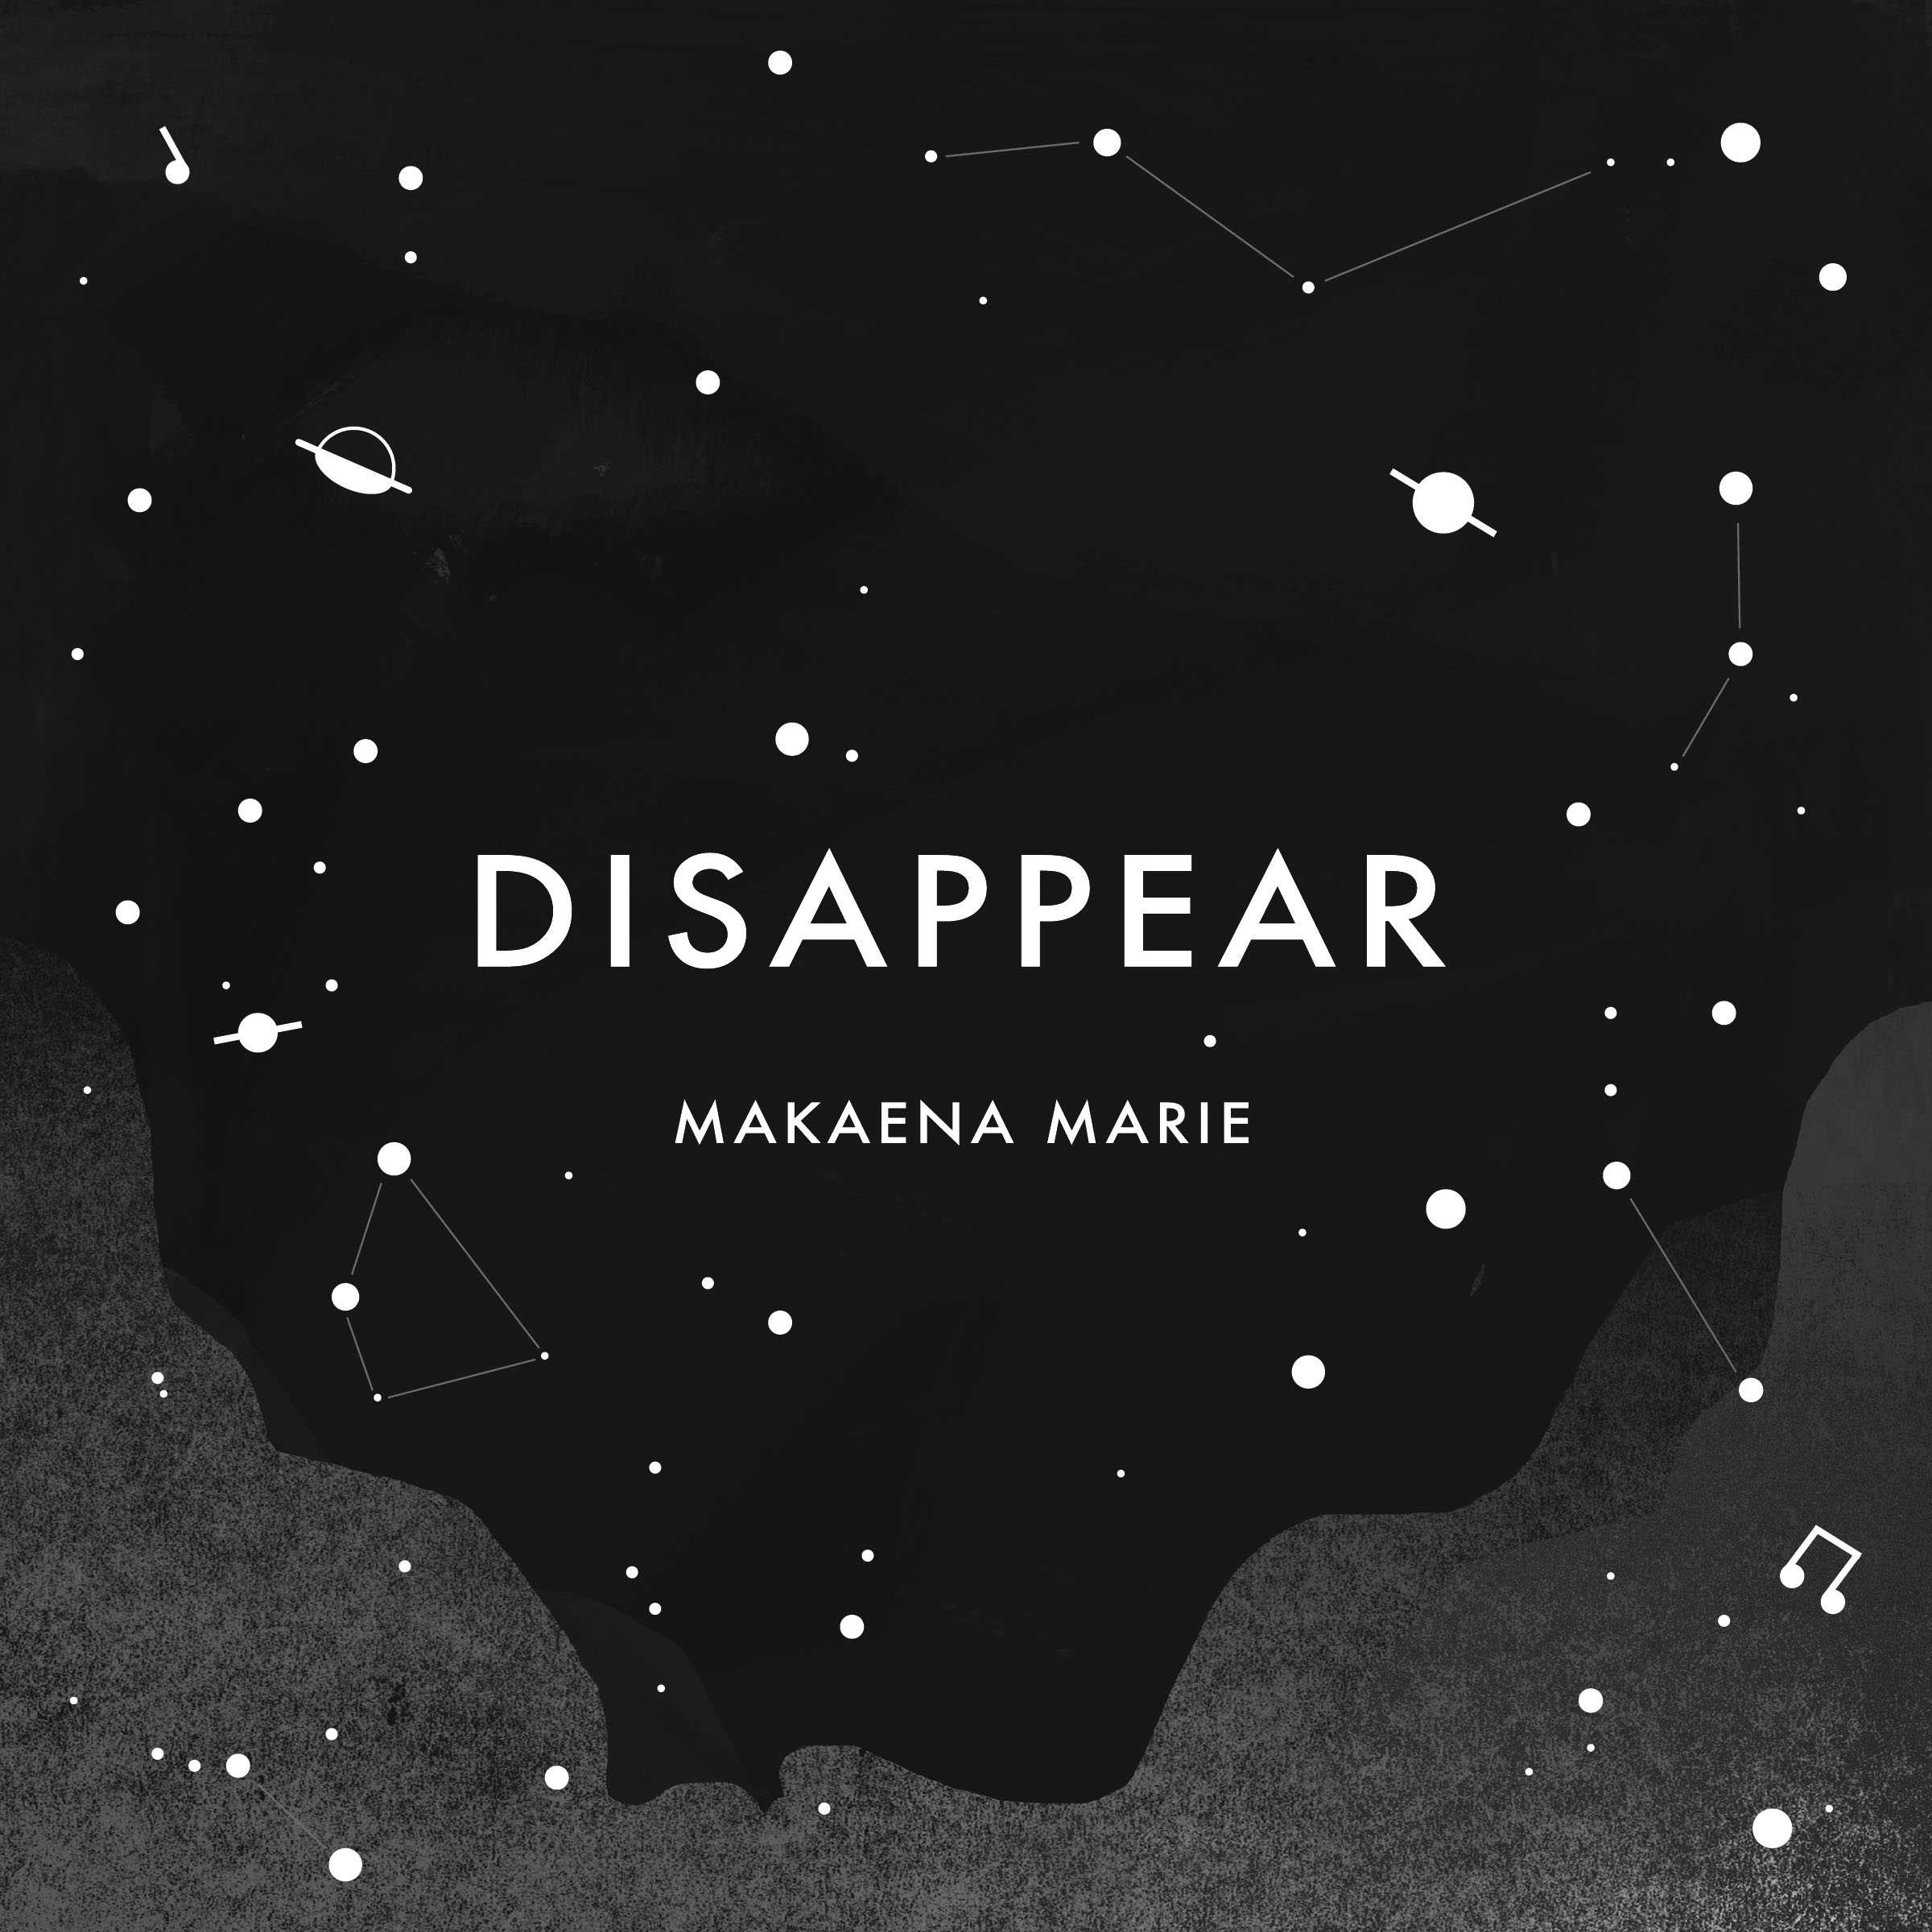 Disappear's album cover